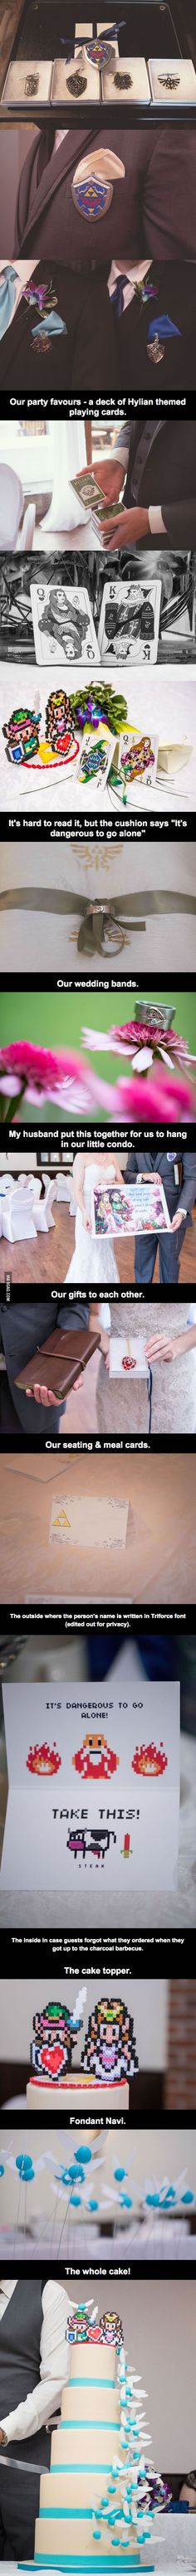 This is what happens when a strange and geeky couple of hopeless romantics get married.